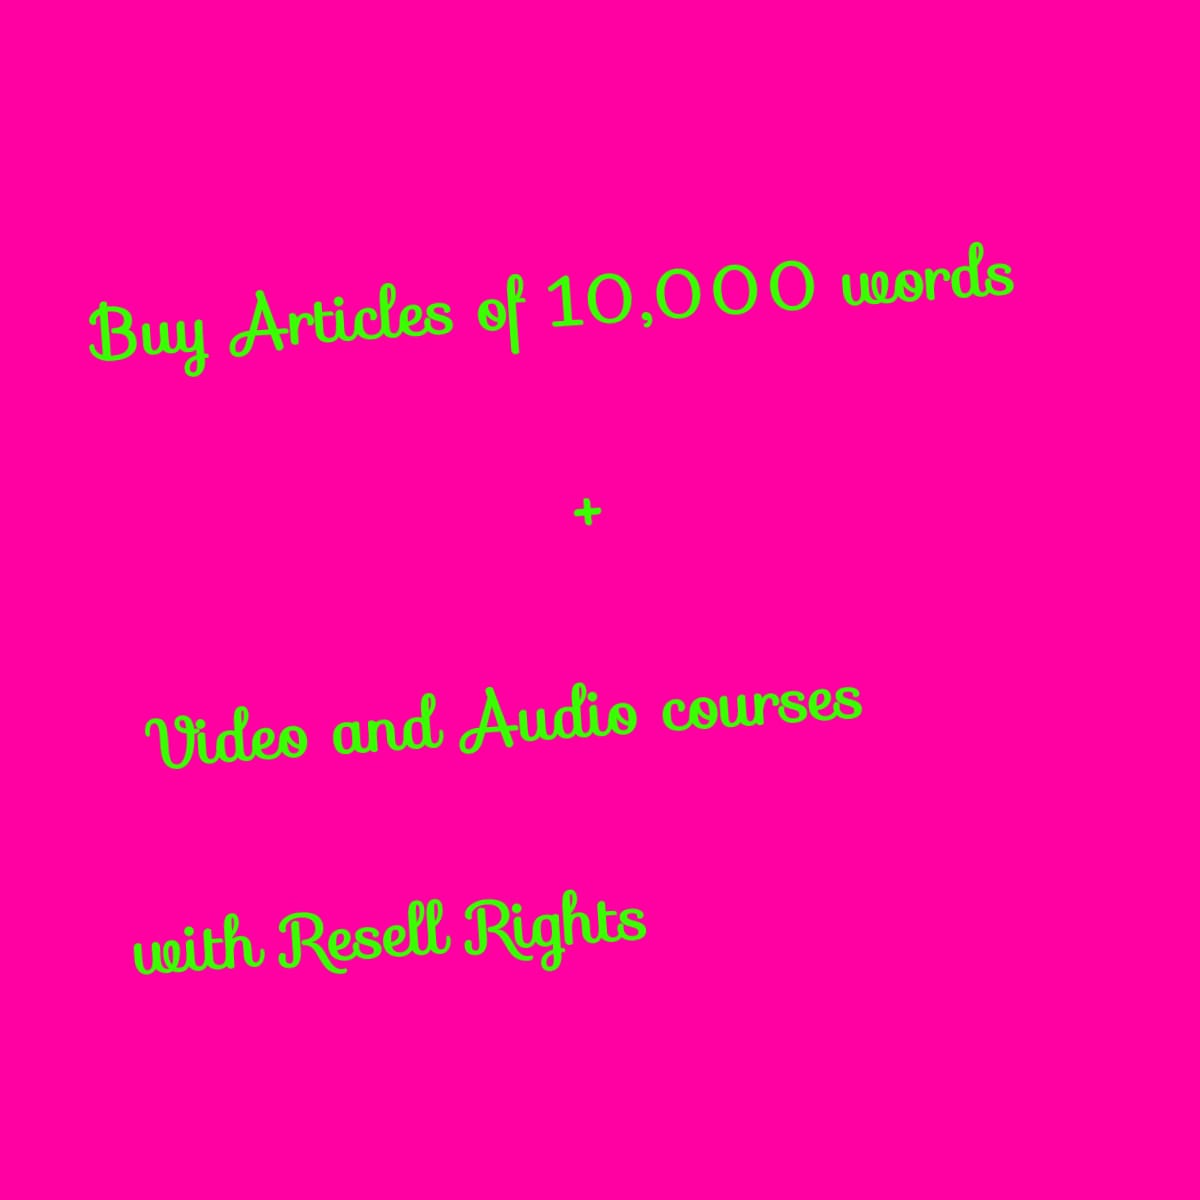 Buy Articles of 10,000 words with Resell Rights + Video and Audio Courses